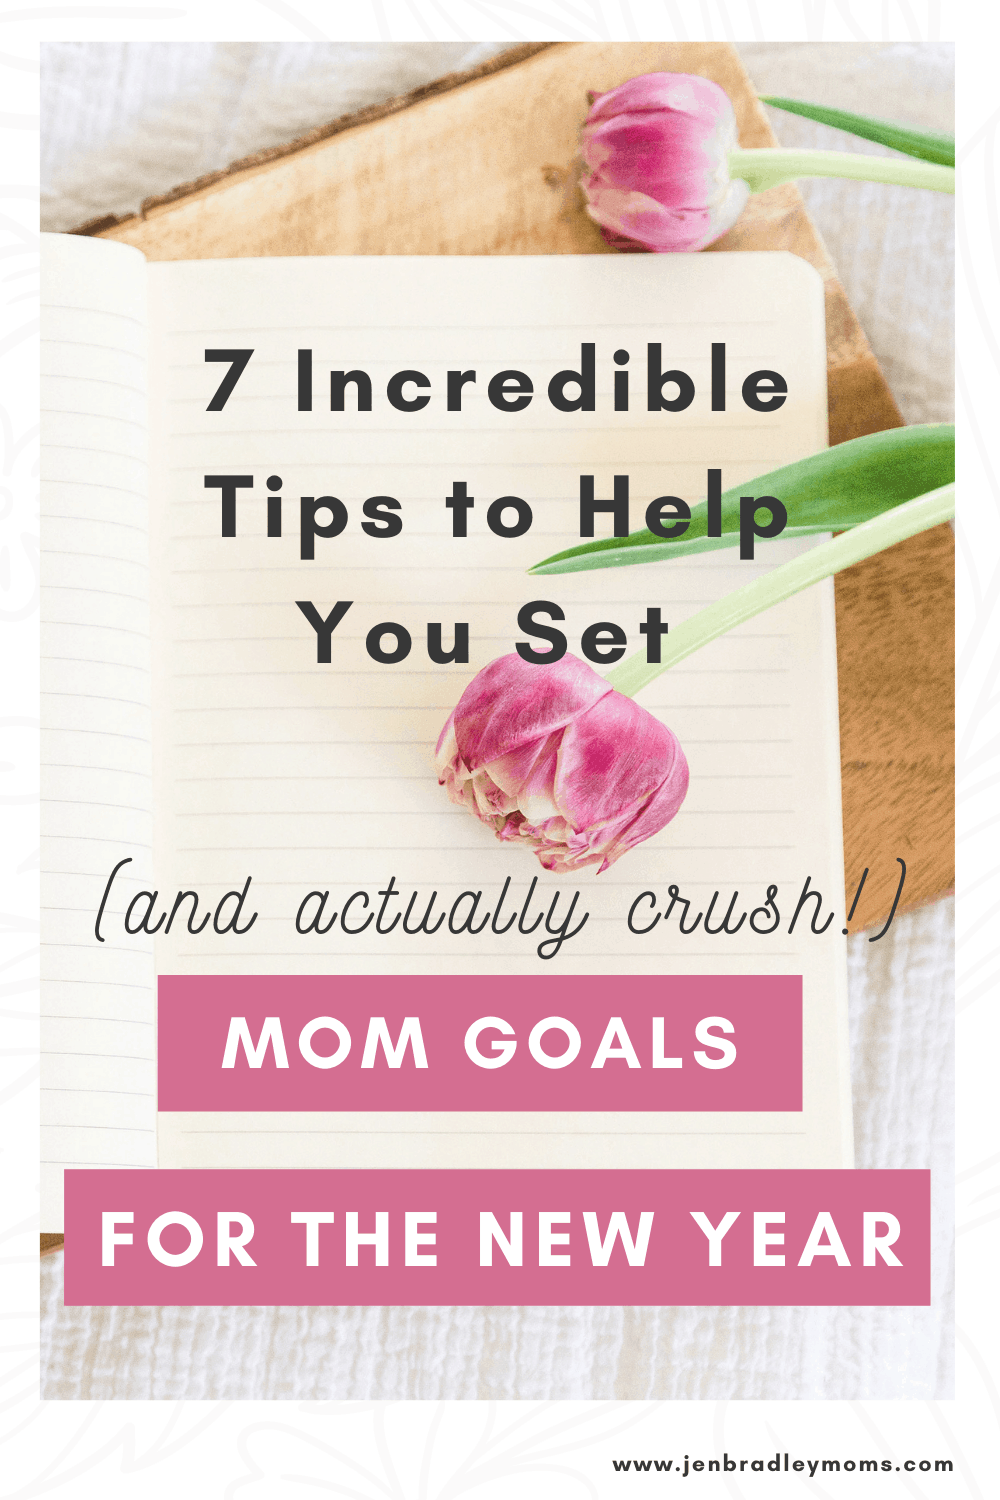 7 Incredible Tips to Help You Set (and Actually Crush!) Your Mom Goals